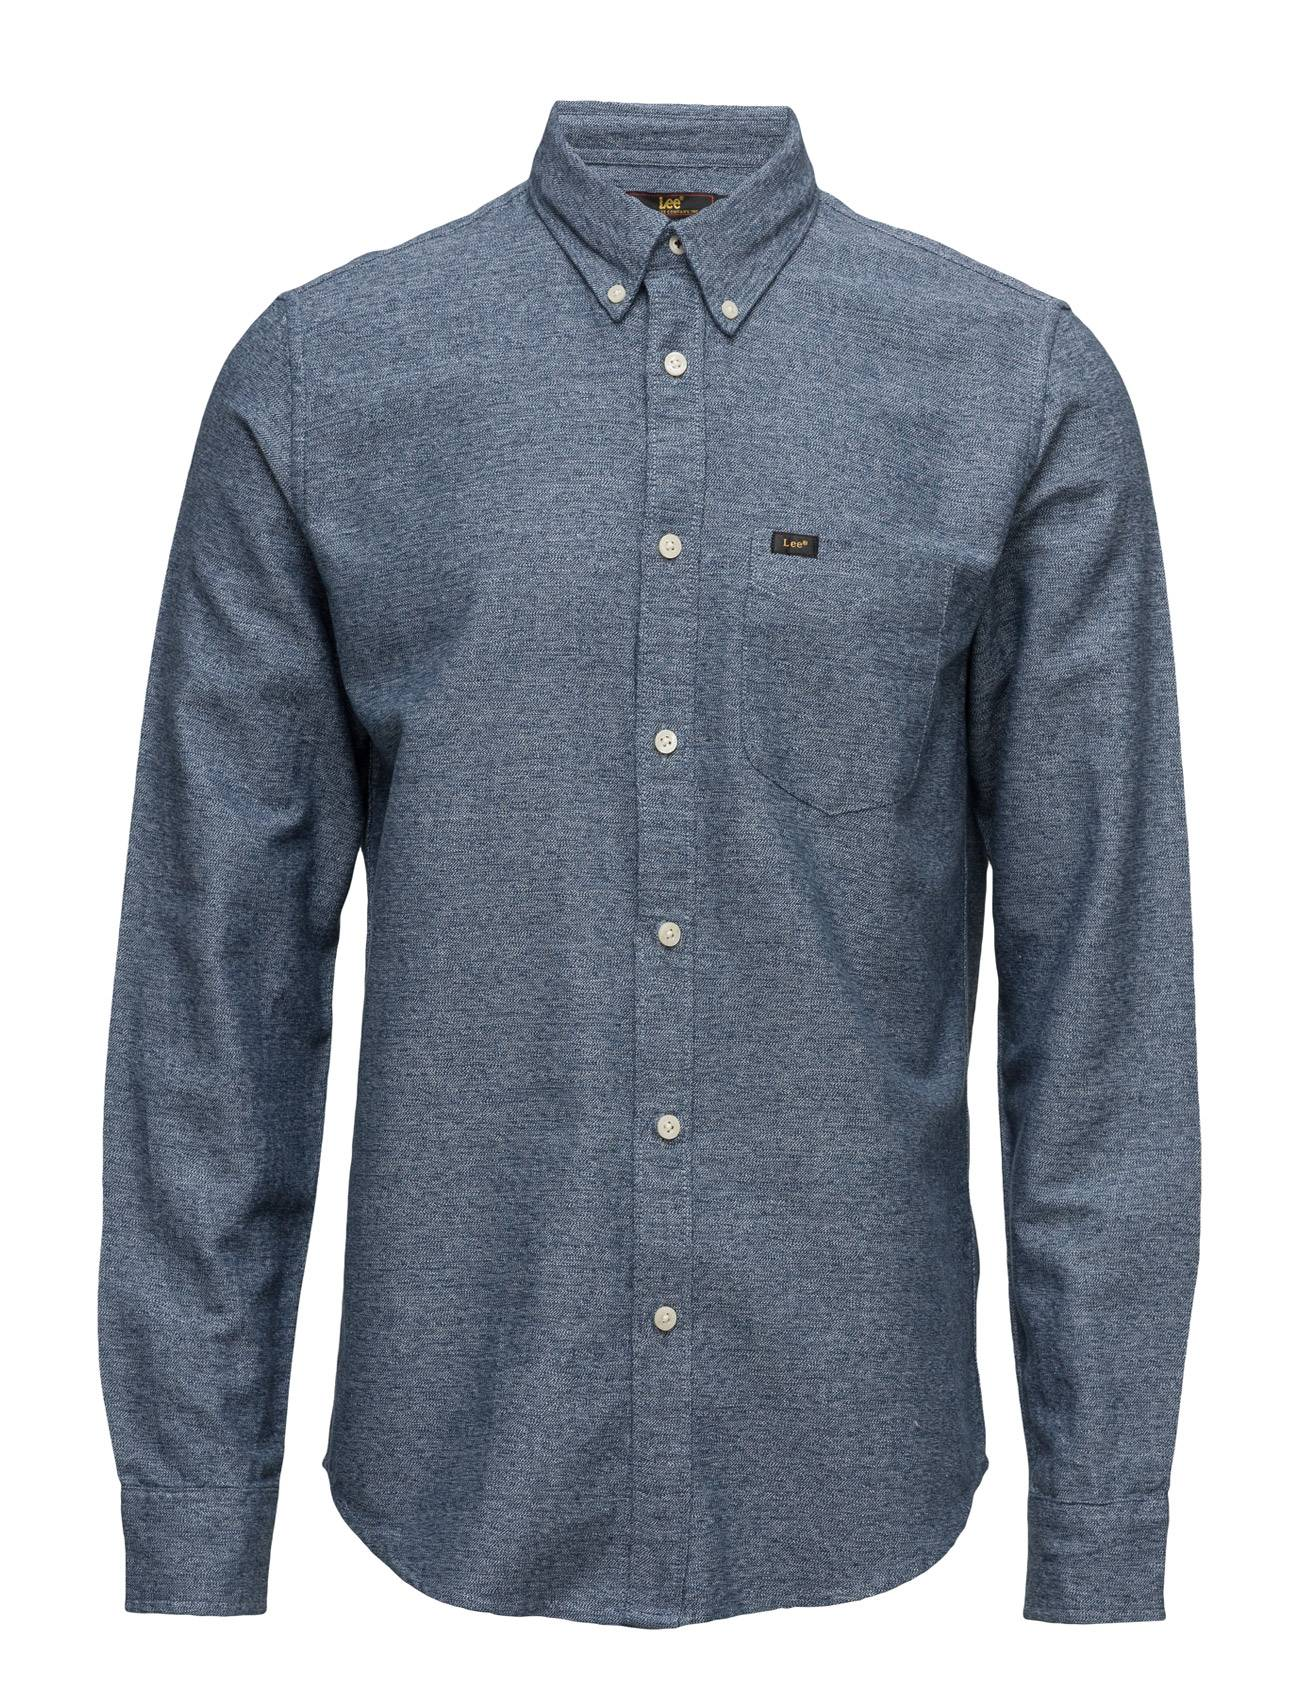 Lee Jeans Lee Button Down Medieval Blue